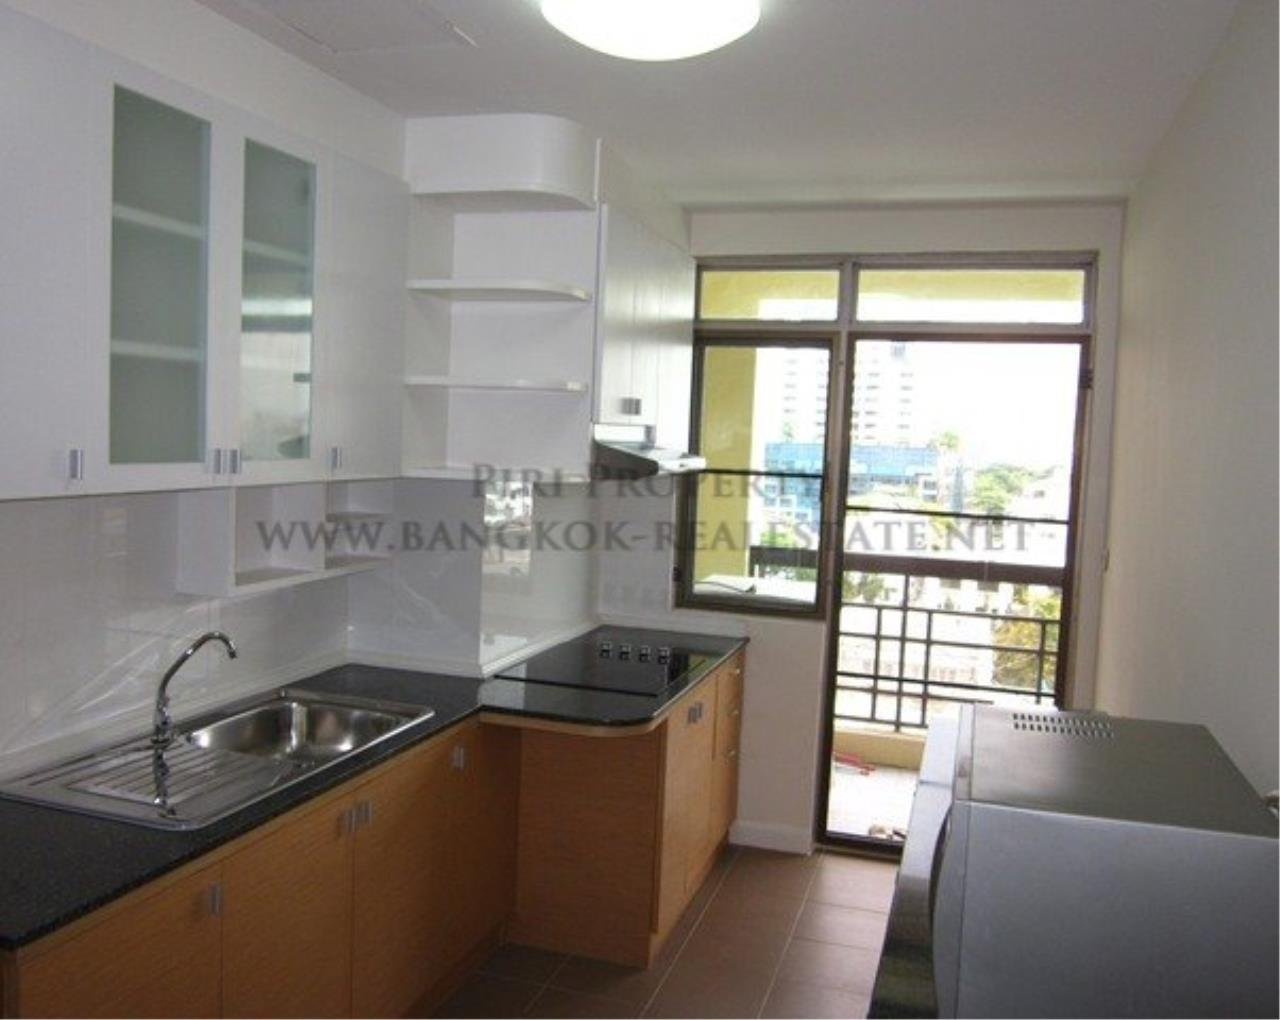 Piri Property Agency's 3 Bedroom in Phrom Phong - Royal Castle Condo for Rent 6